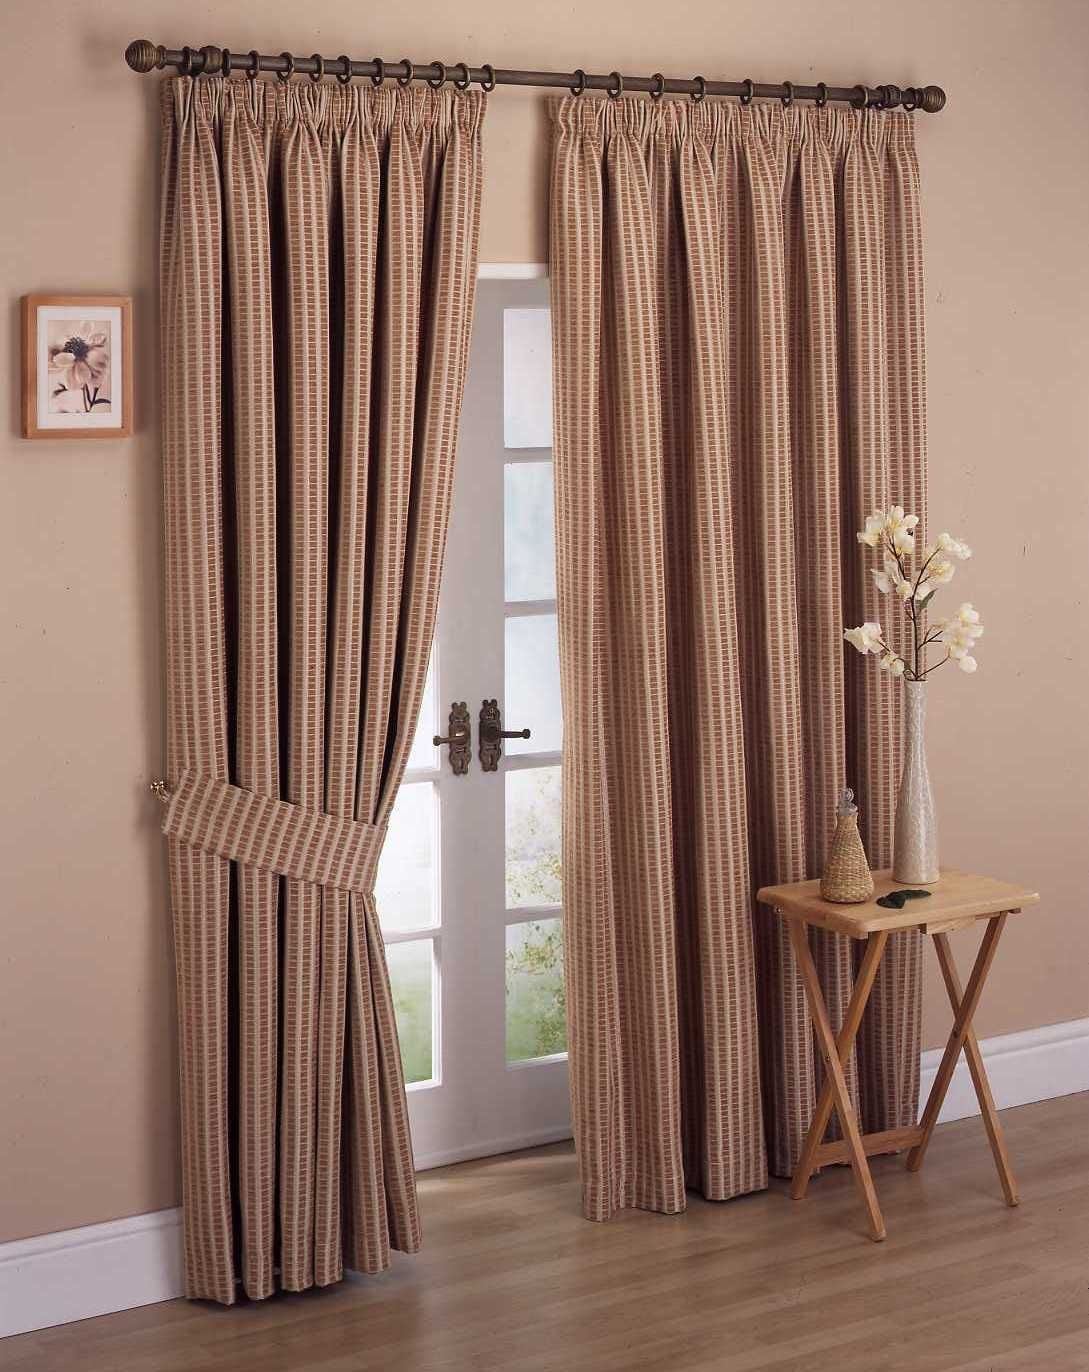 Classic curtain designs for living room - Classic Curtains Designs Top Catalog Bedroom Window And Drapes Decor Ideasdecor Ideas